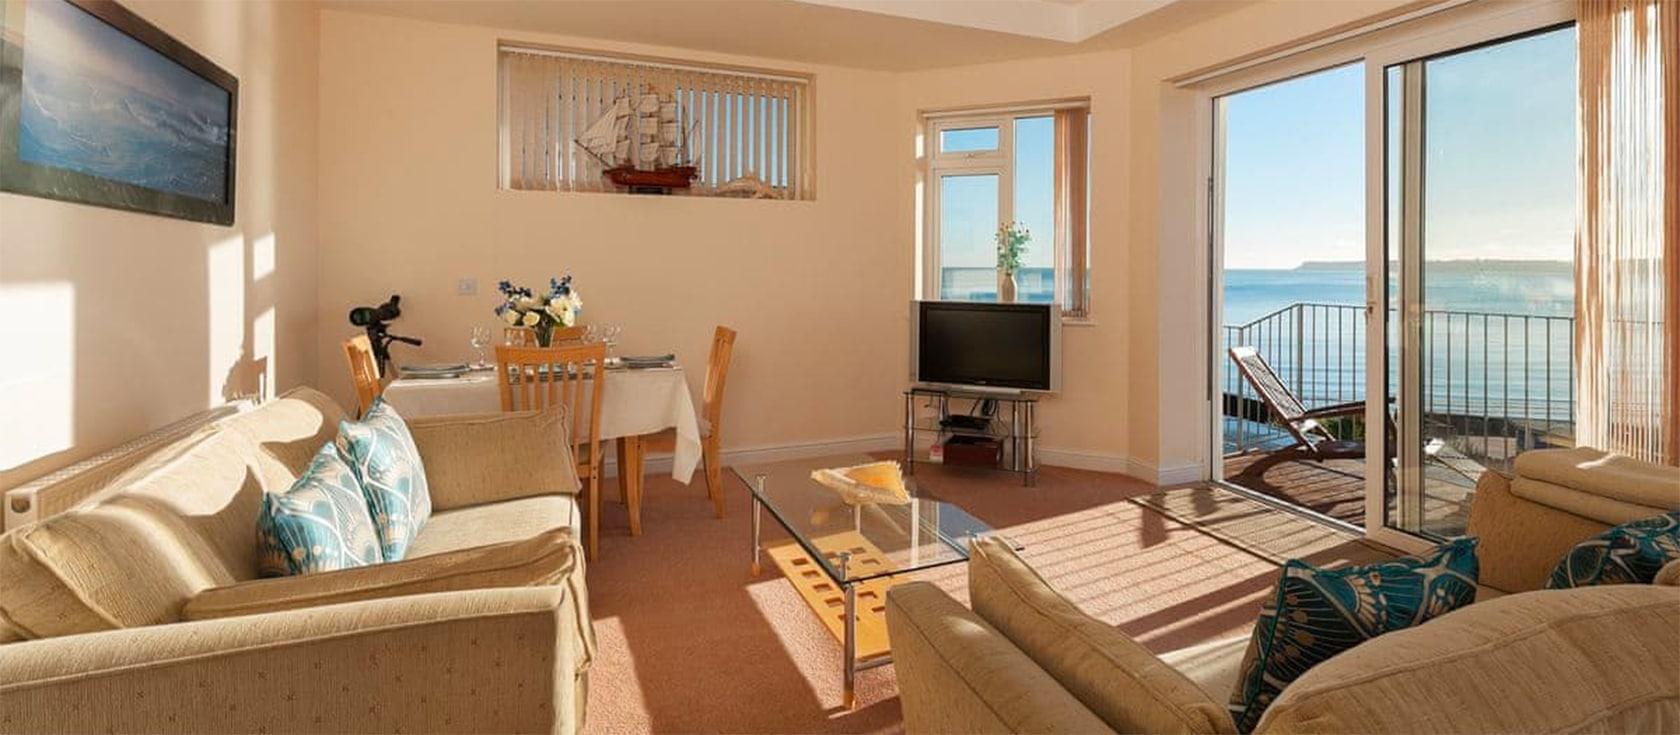 7 Vista Apartments, Paignton | Holiday cottages in Devon ...